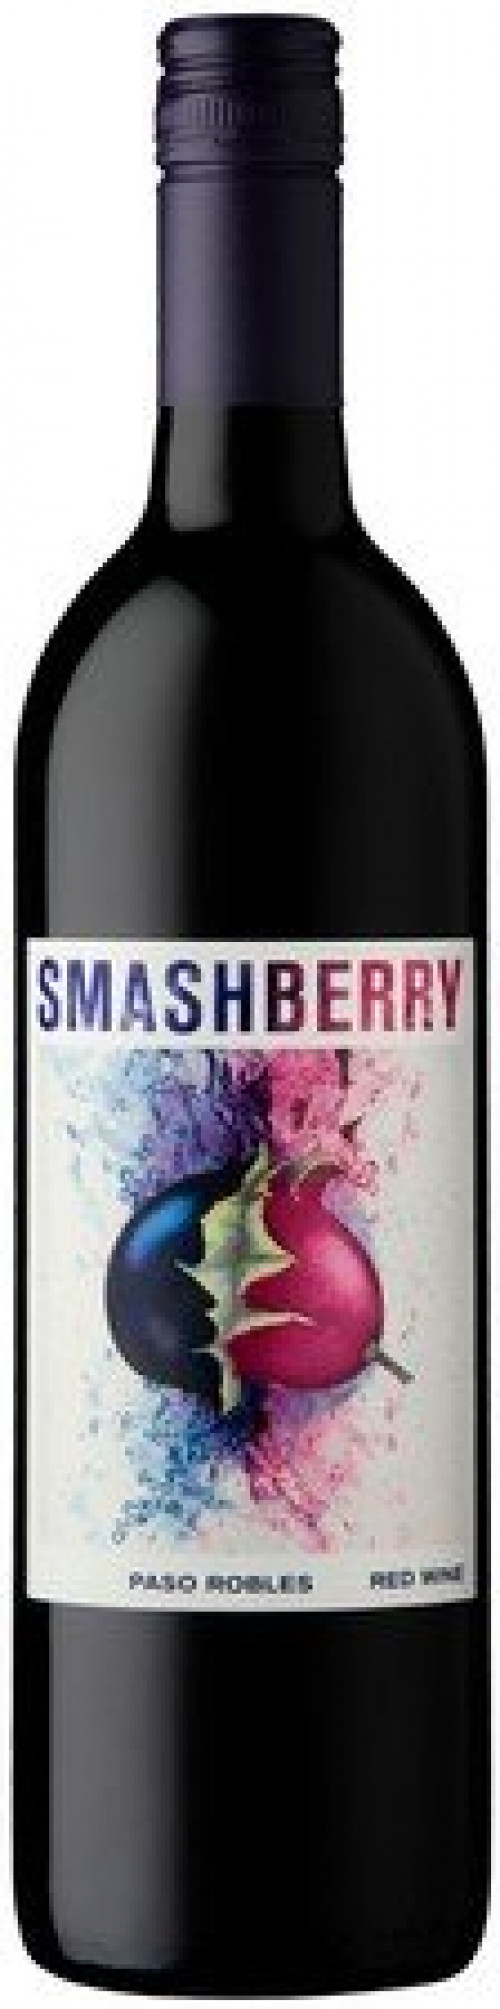 2018 Smashberry Red 750ml